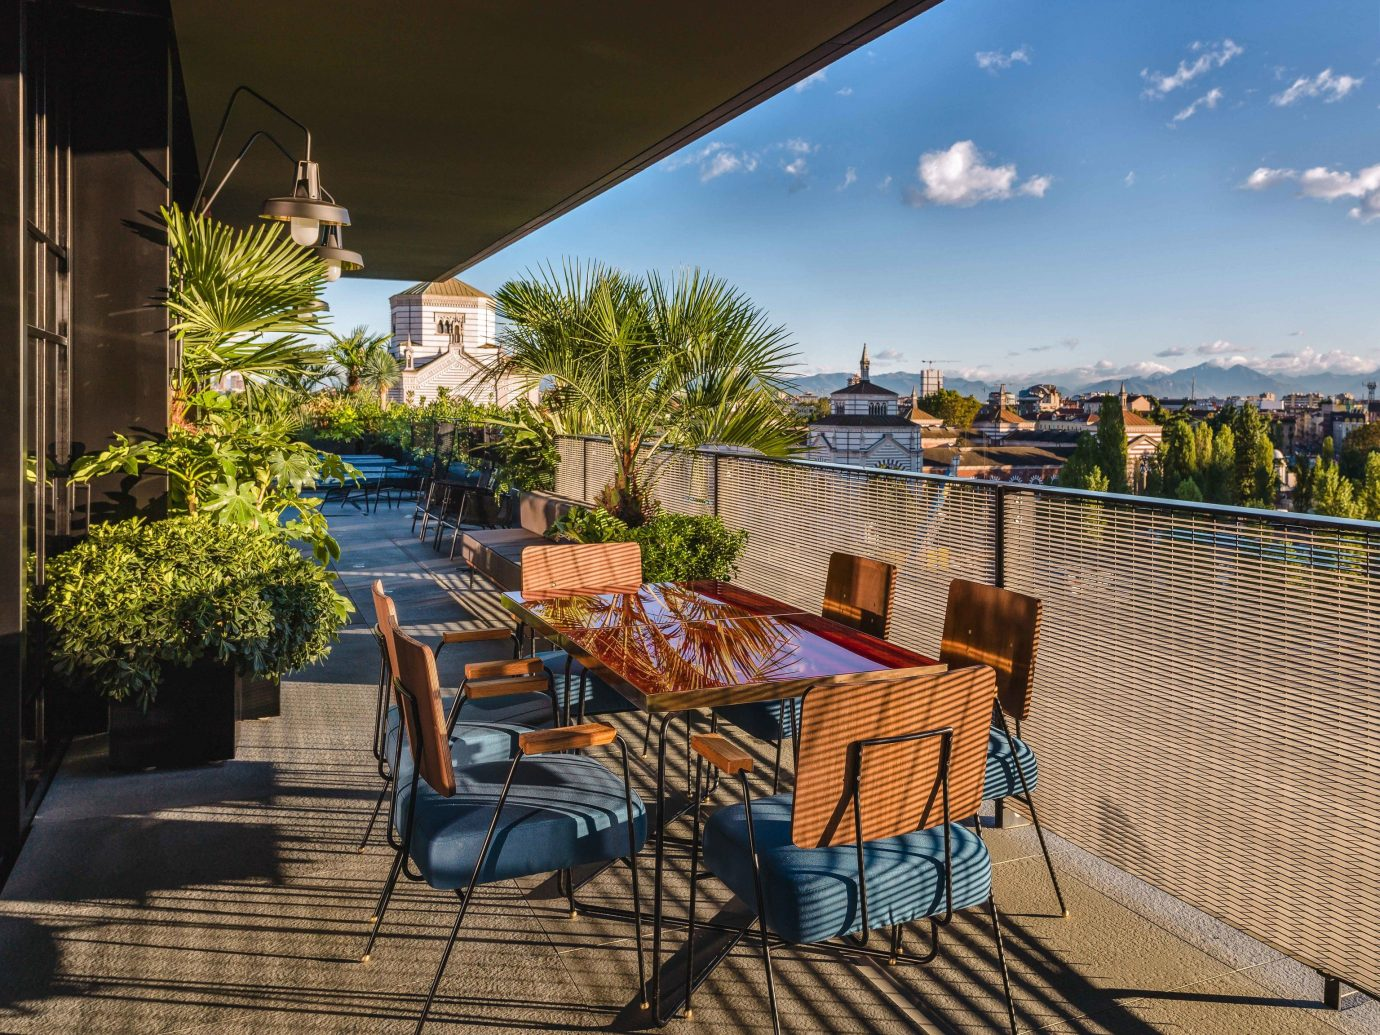 Arts + Culture Italy Milan property real estate Resort home estate Patio outdoor structure roof Balcony apartment walkway leisure tree vacation house penthouse apartment landscape